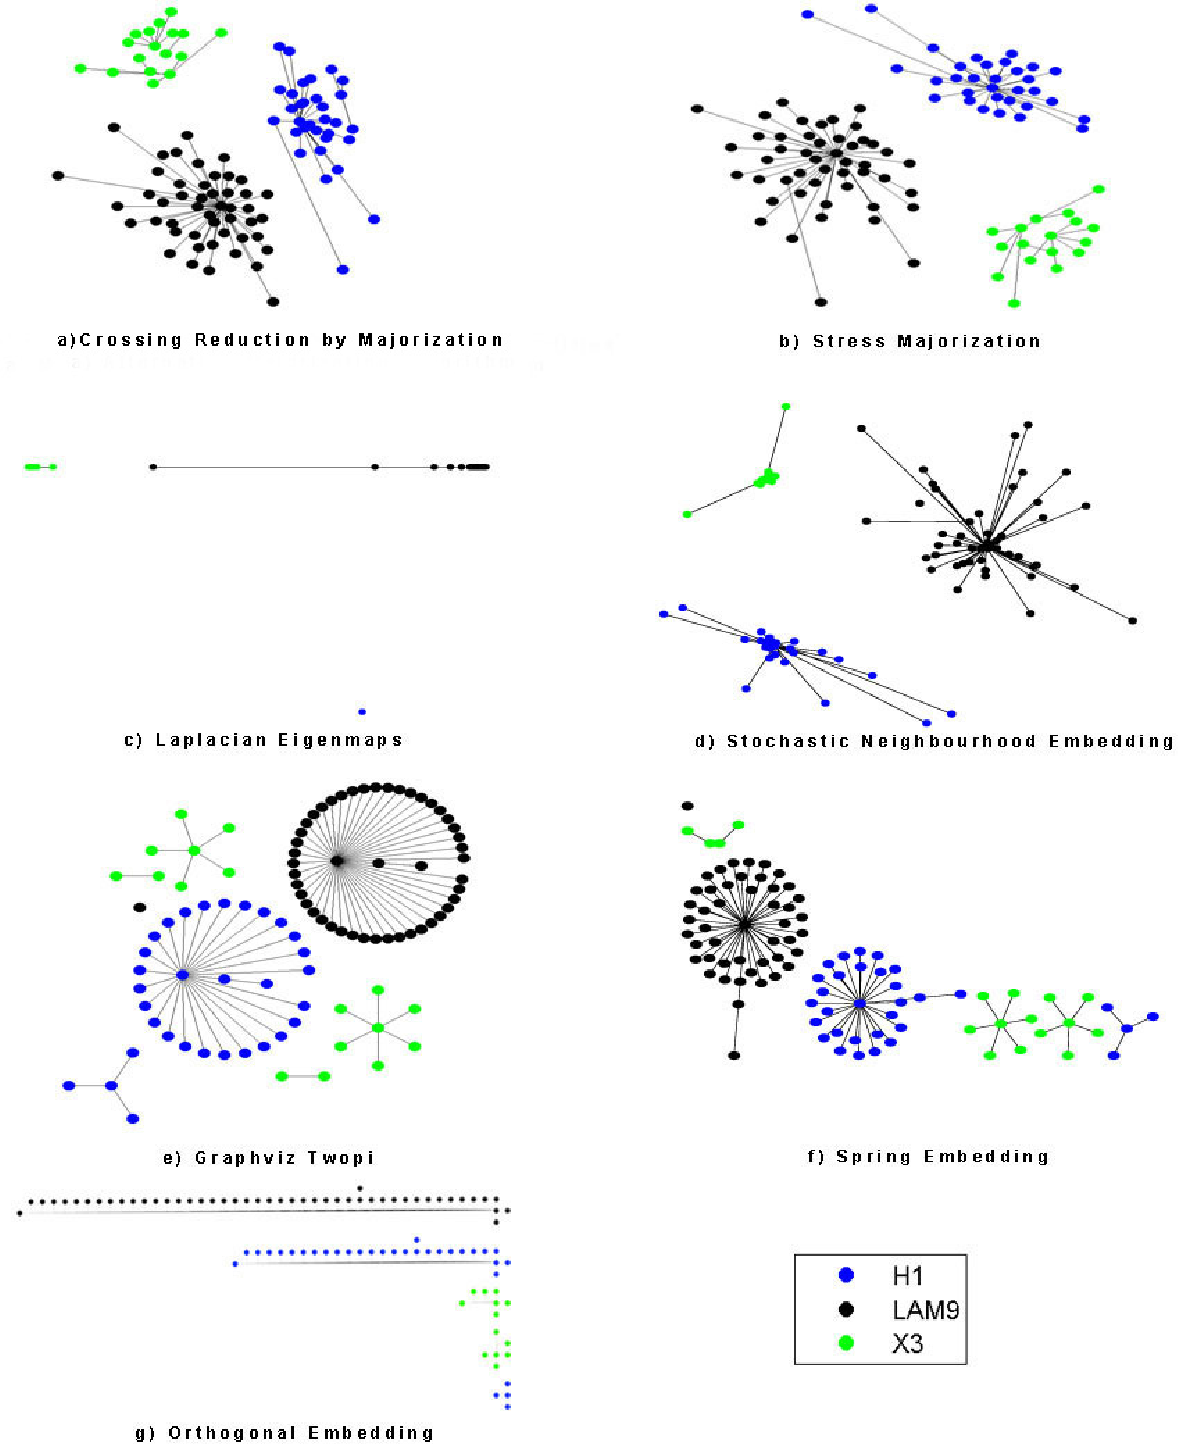 Figure 8: Embeddings of spoligoforests of H-X-LAM sublineages by 7 algorithms (a) CRSM (b) MDS (c) Laplacian Eigenmaps (d) Stochastic Neighborhood Embedding (SNE) (e) Graphviz Twopi (f) Spring Embedding (g) Orthogonal Embedding.